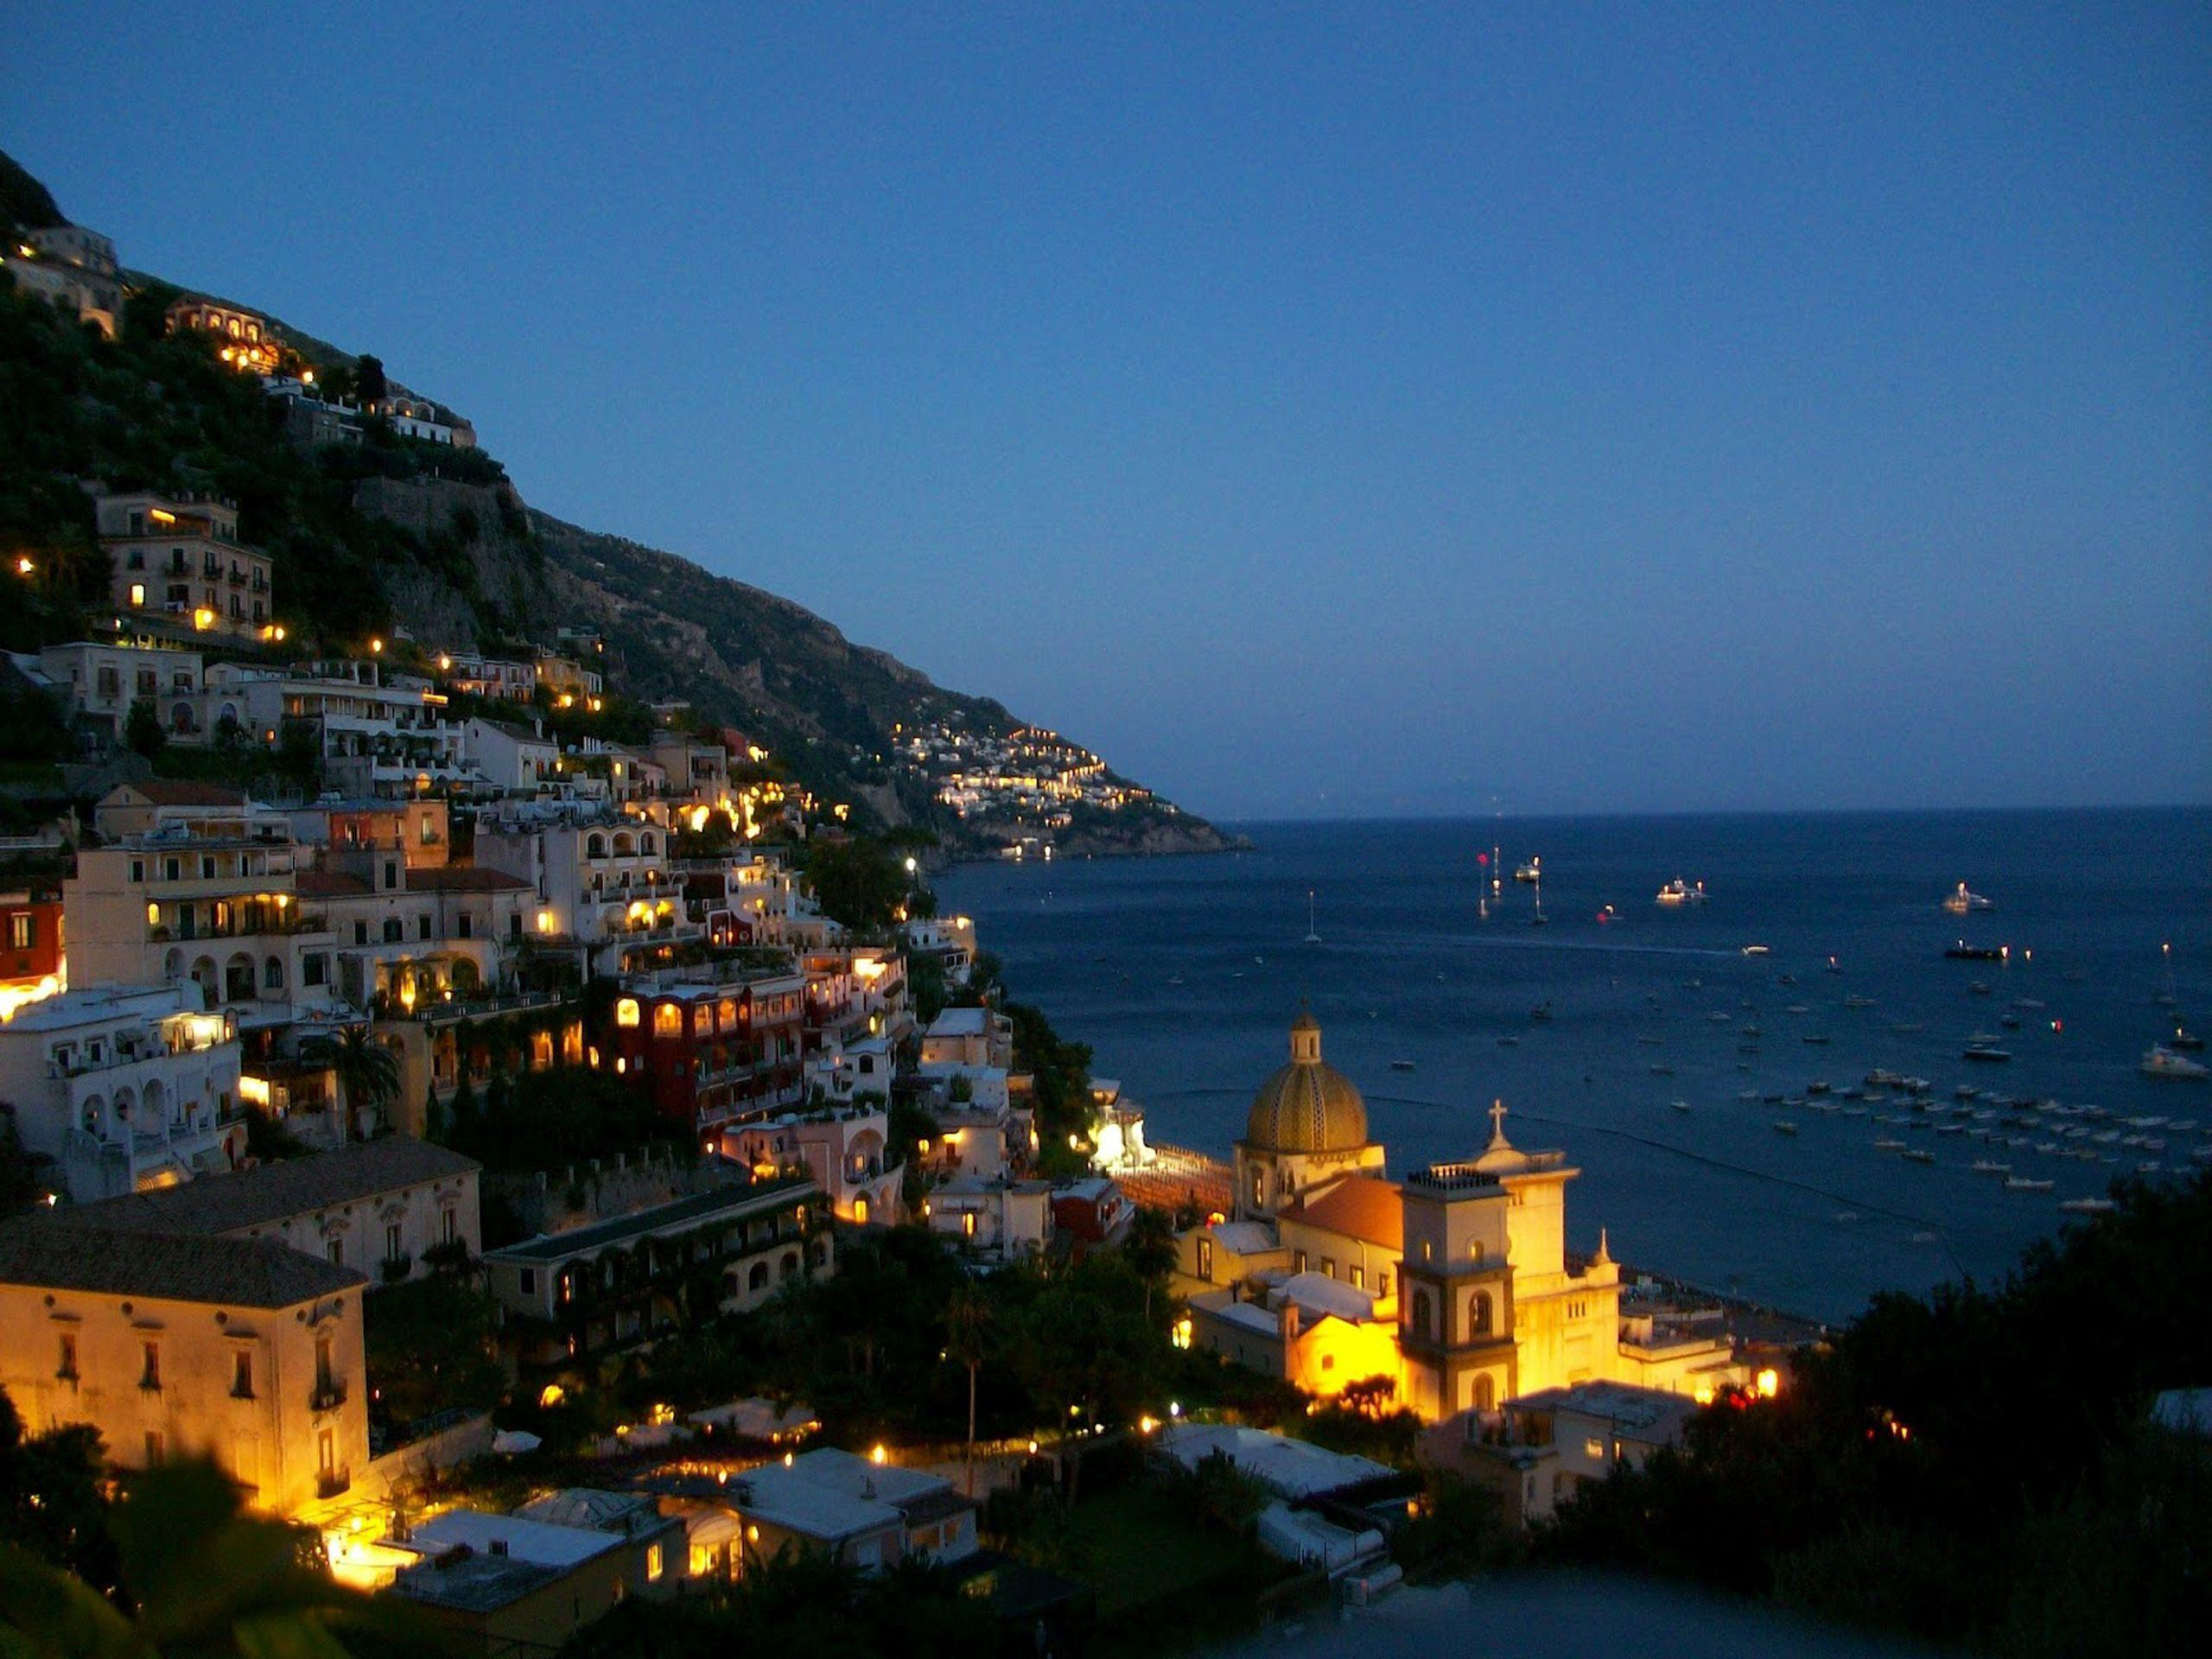 Evening lights at the resort in Amalfi, Italy wallpapers and